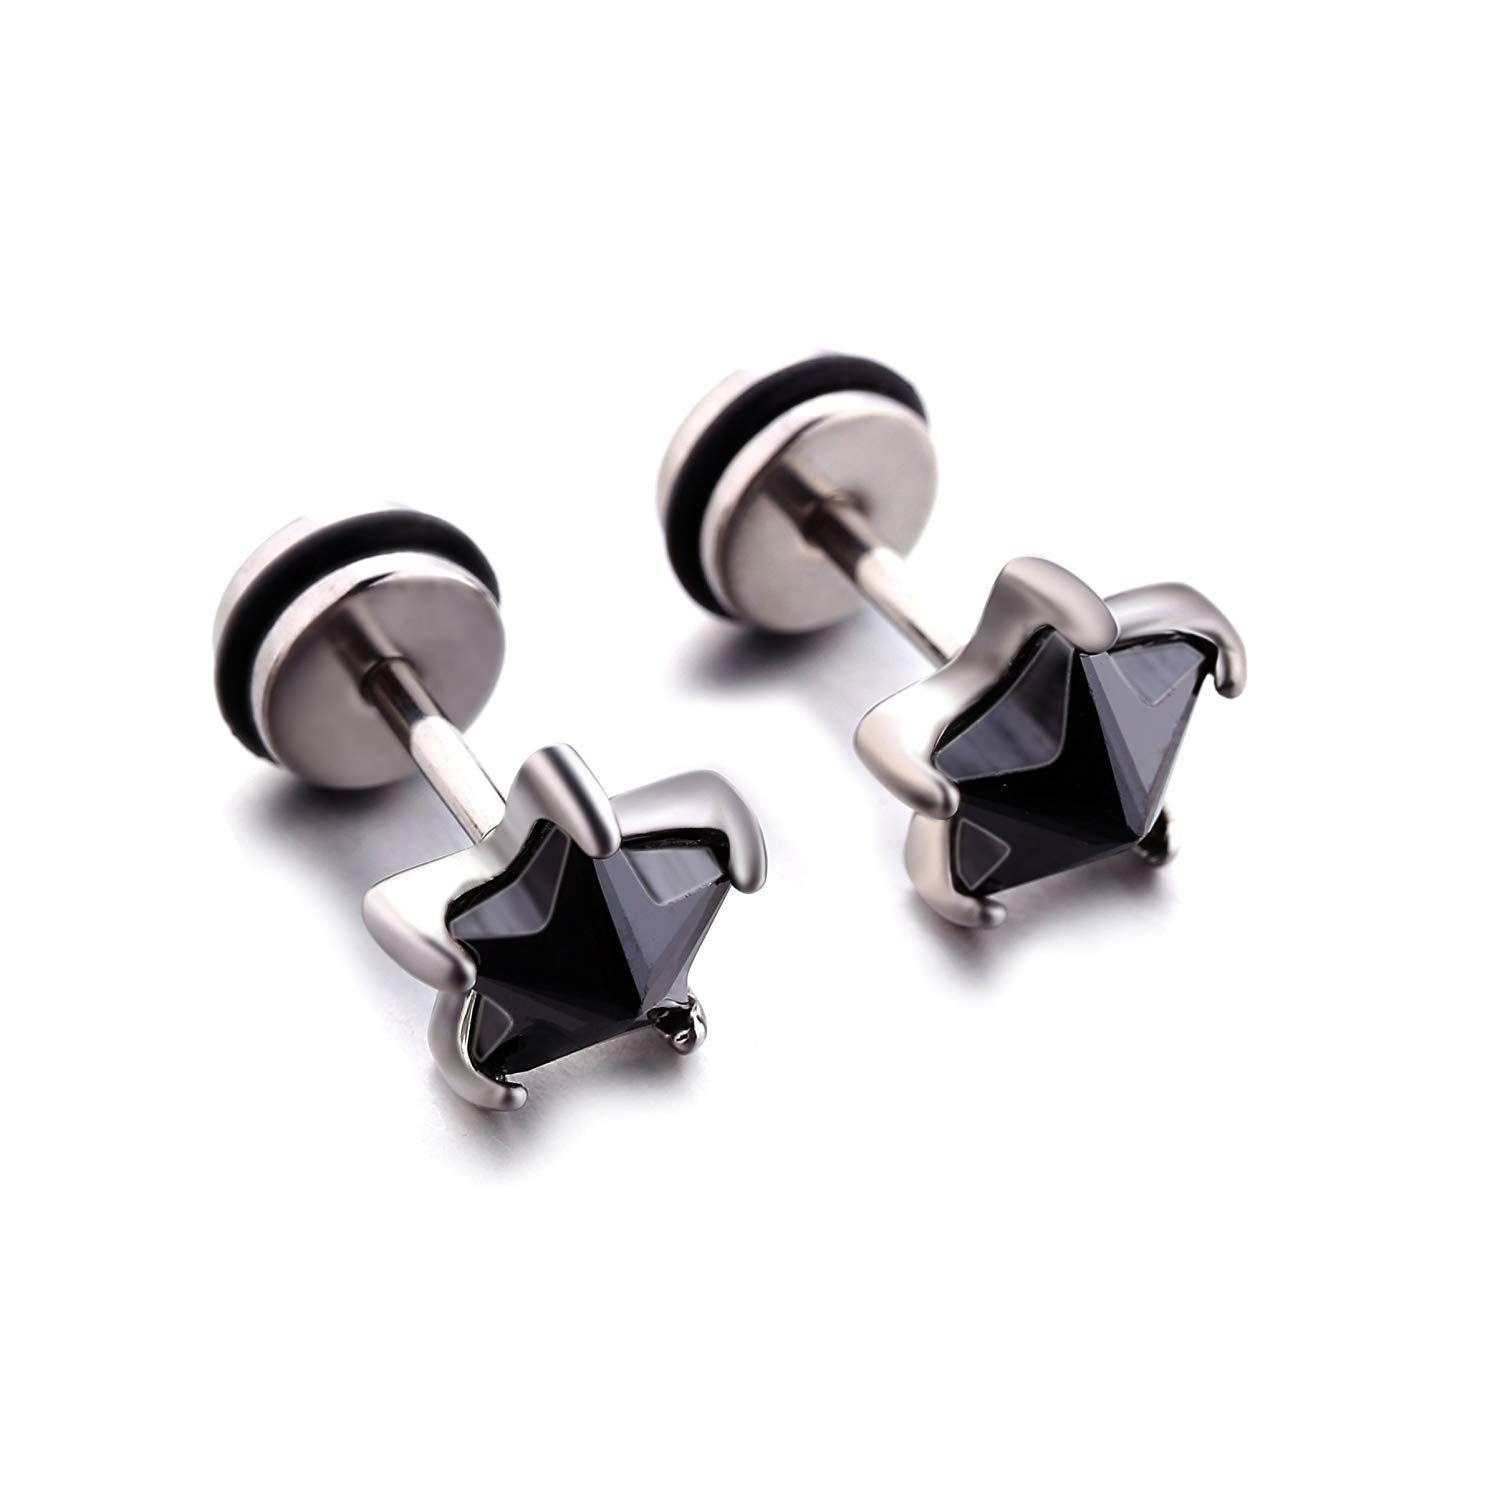 e9500cc5d 1-2 Pairs 16G Stainless Steel Mens Womens Cubic Zirconia Star Screw Back Stud  Earrings Ears Piercing ** Many thanks for visiting our image.